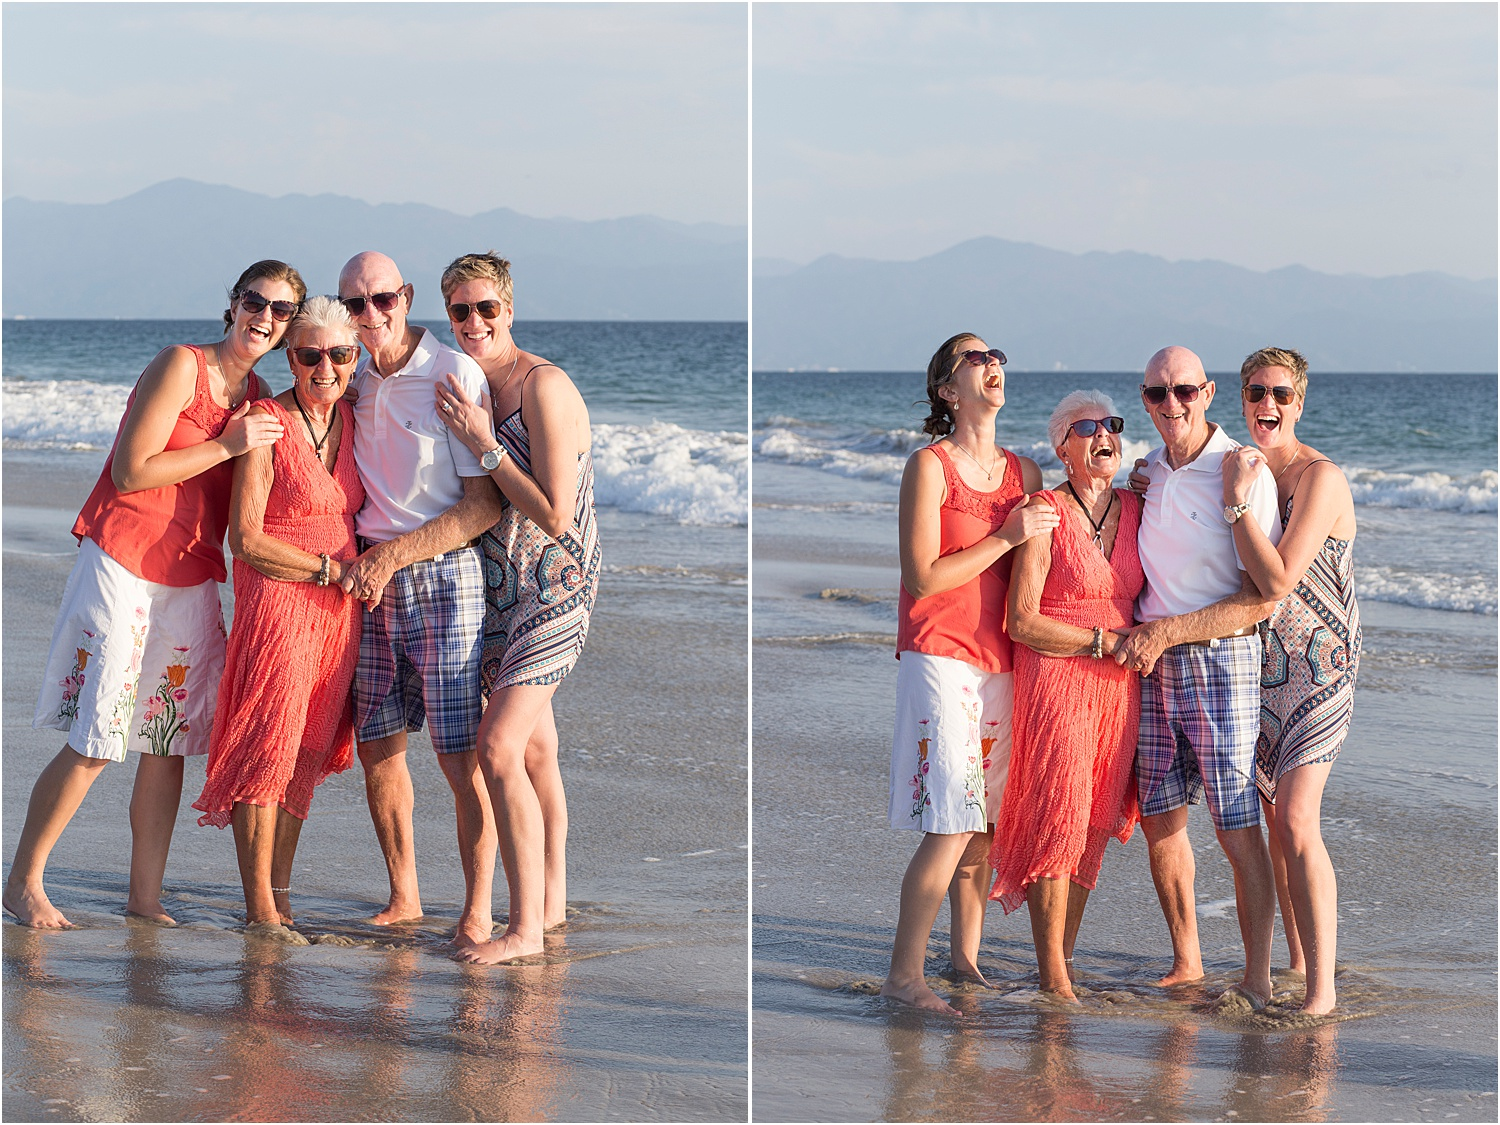 Image: Mixing posed and lifestyle can add variety to your photos.